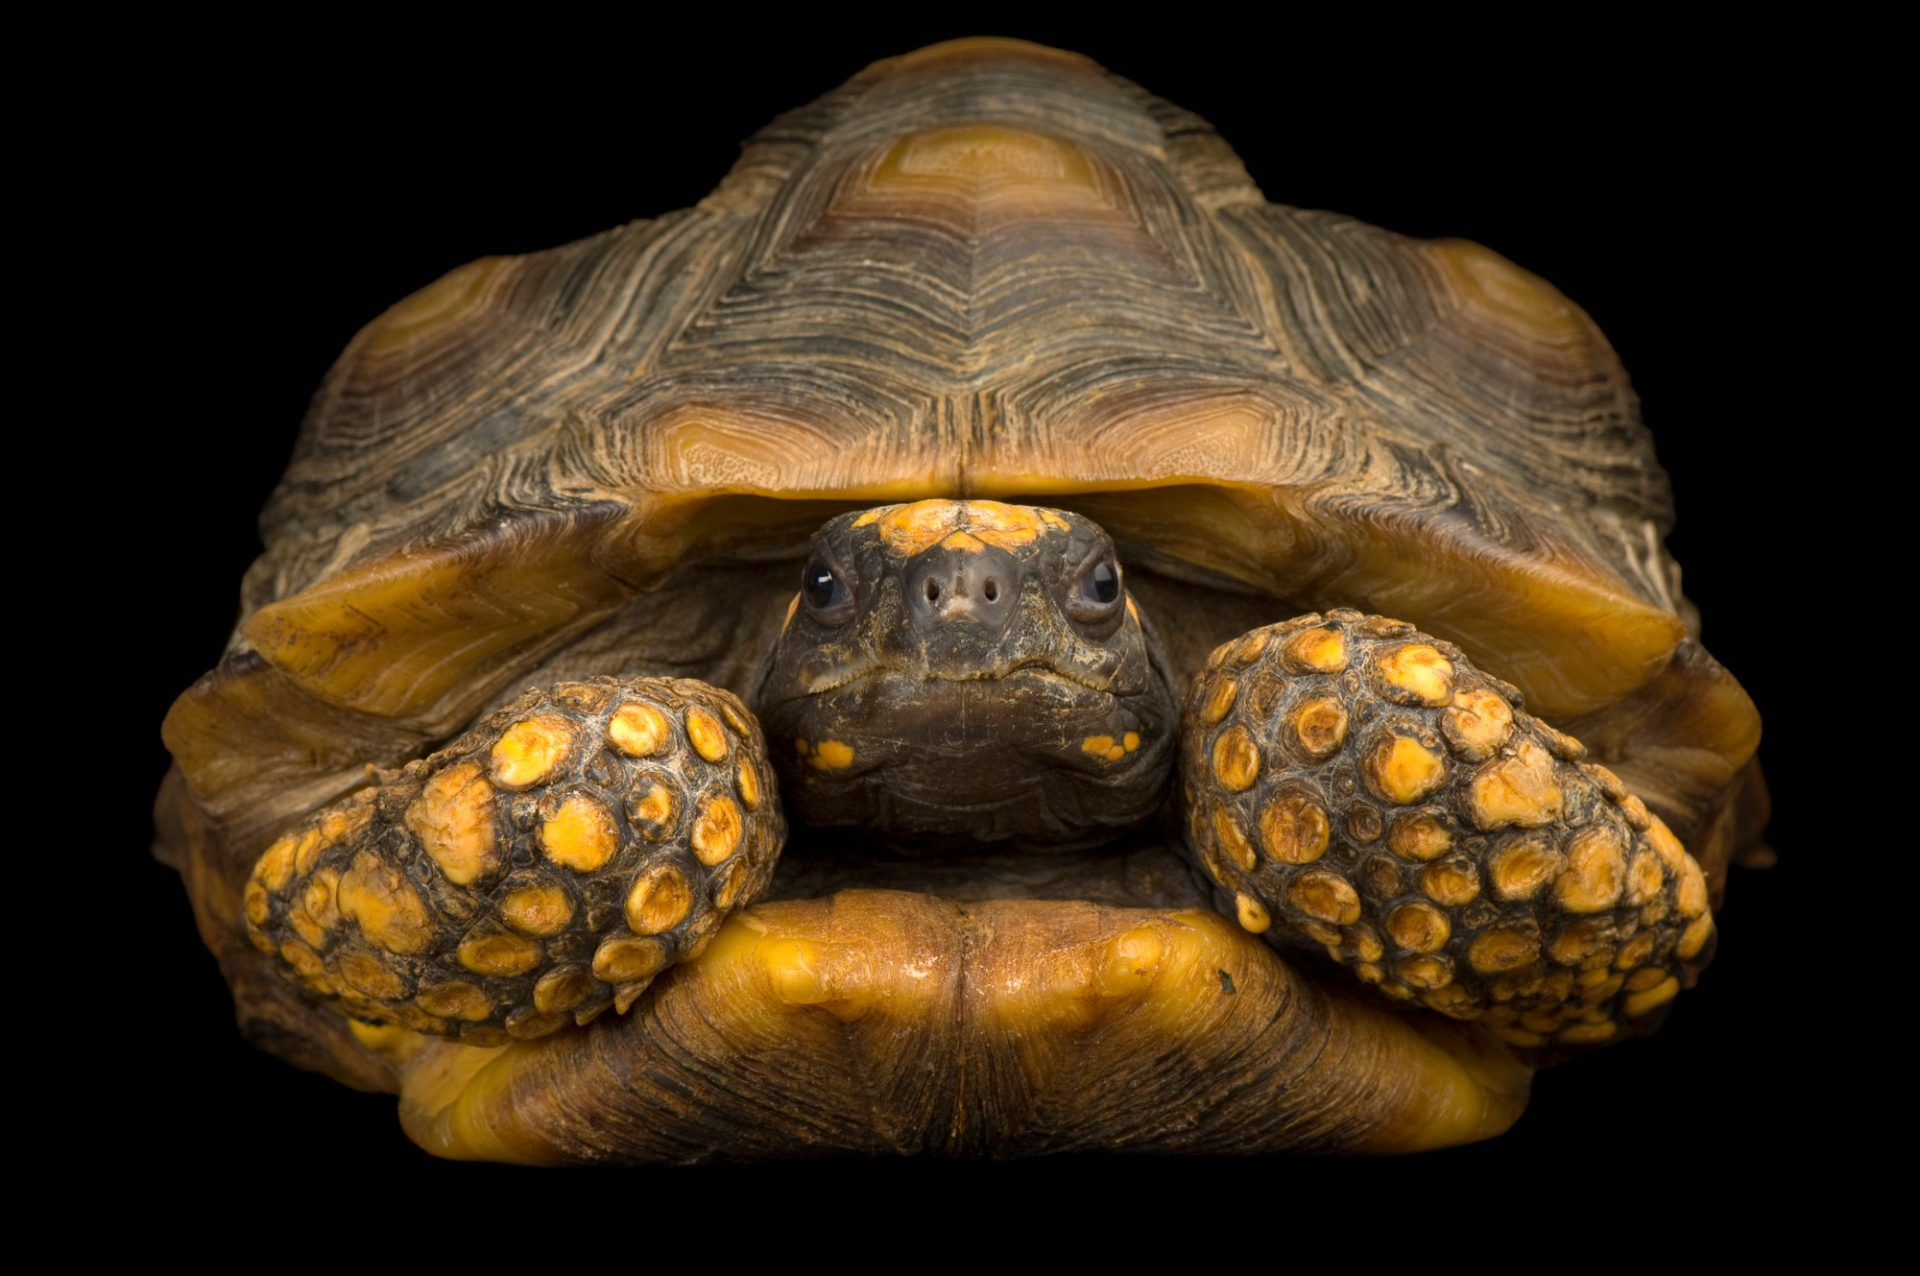 Photo: A South American yellow-footed tortoise (Geochelone denticulata) at the Kansas City Zoo.